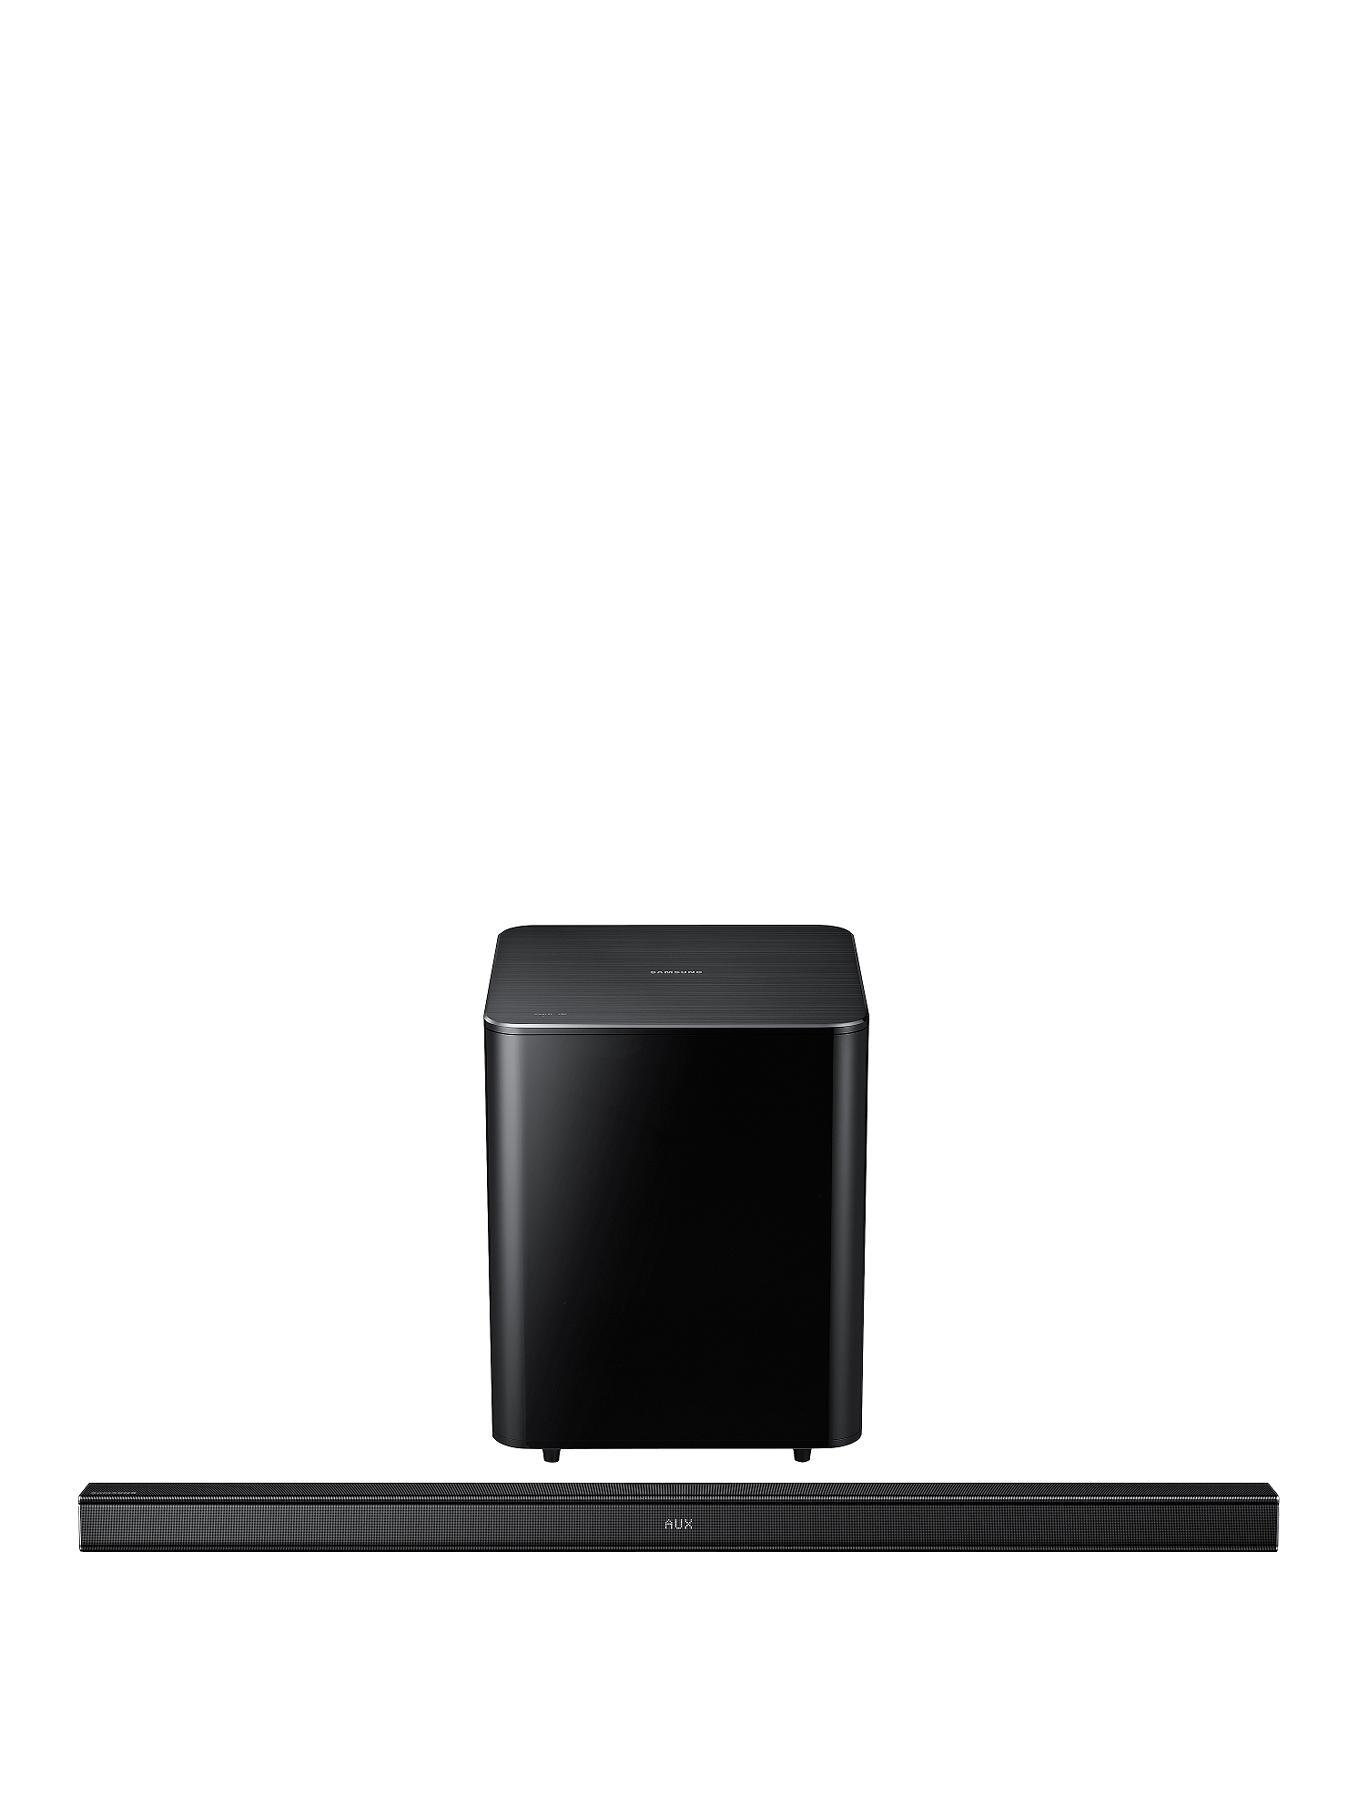 Samsung HW-F550 310 Watt Soundbar - Black